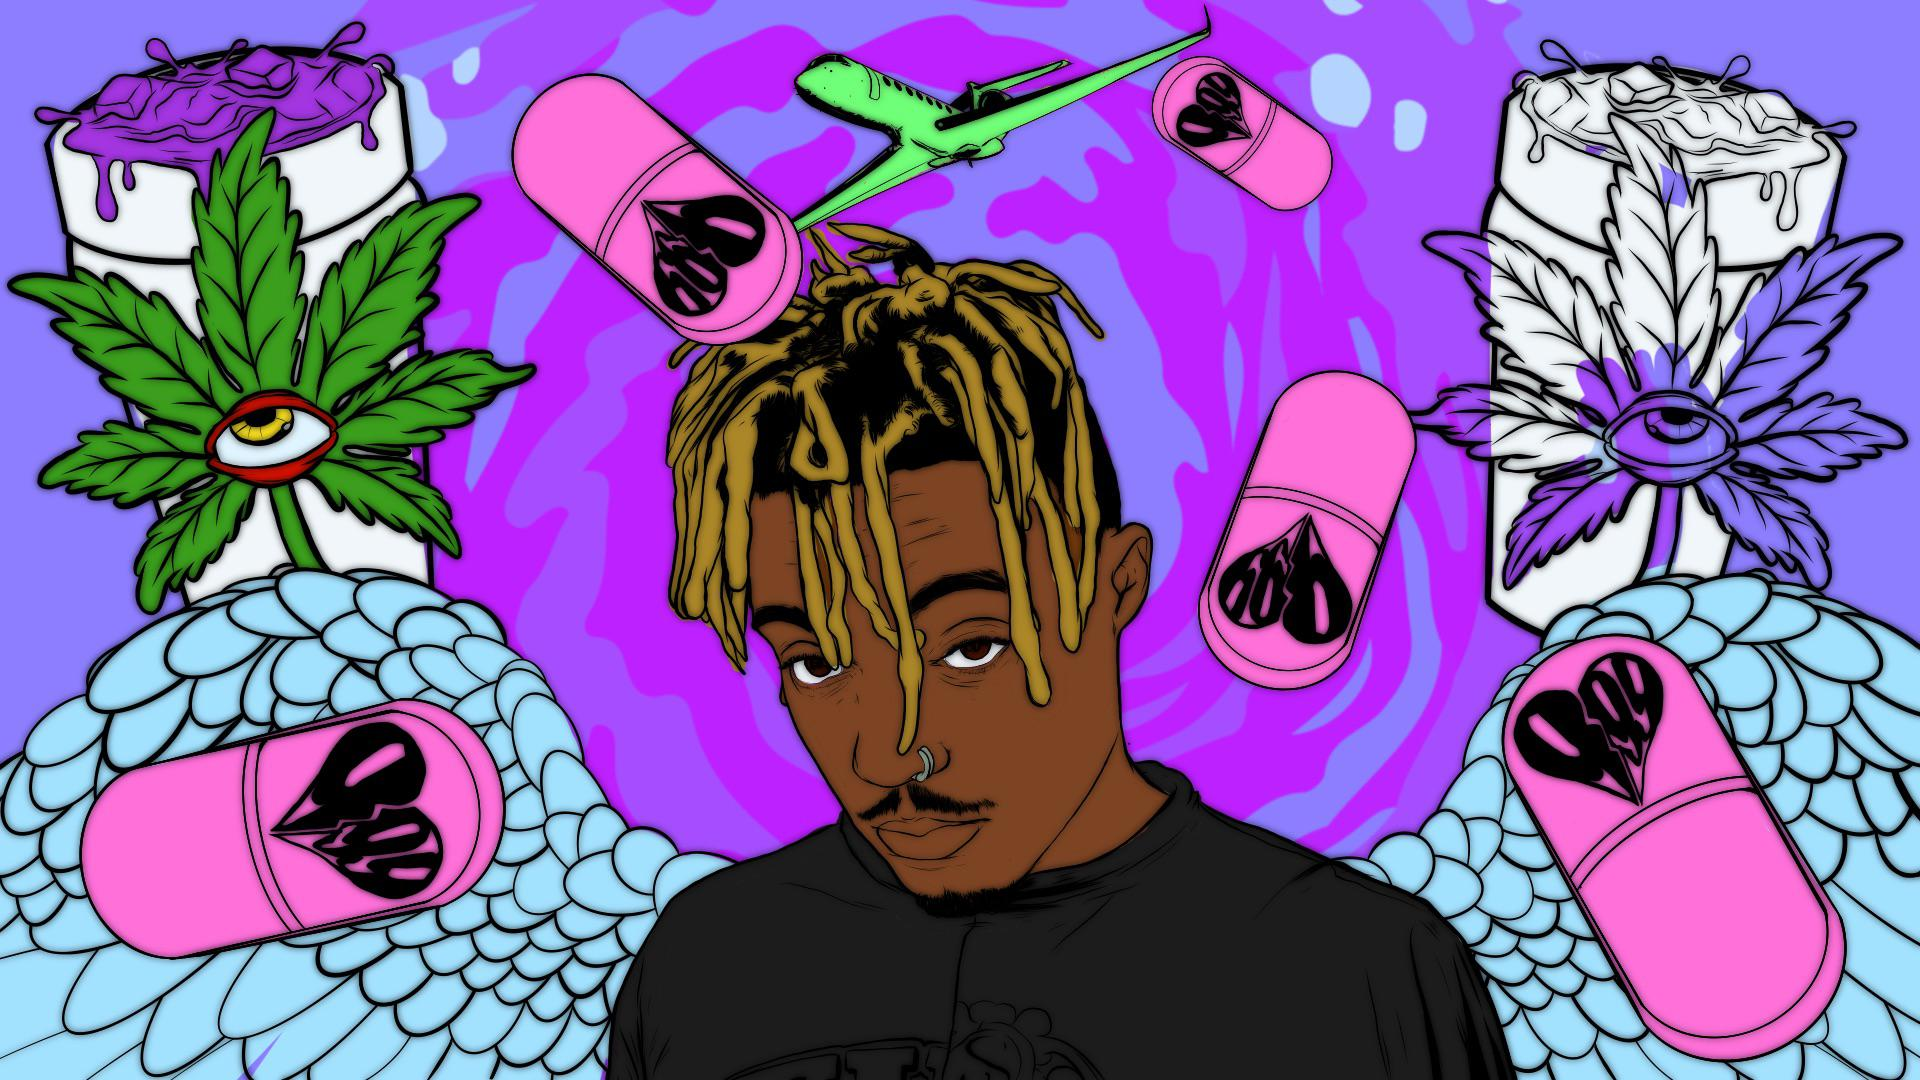 YNW Melly And Juice Wrld Wallpapers - Wallpaper Cave